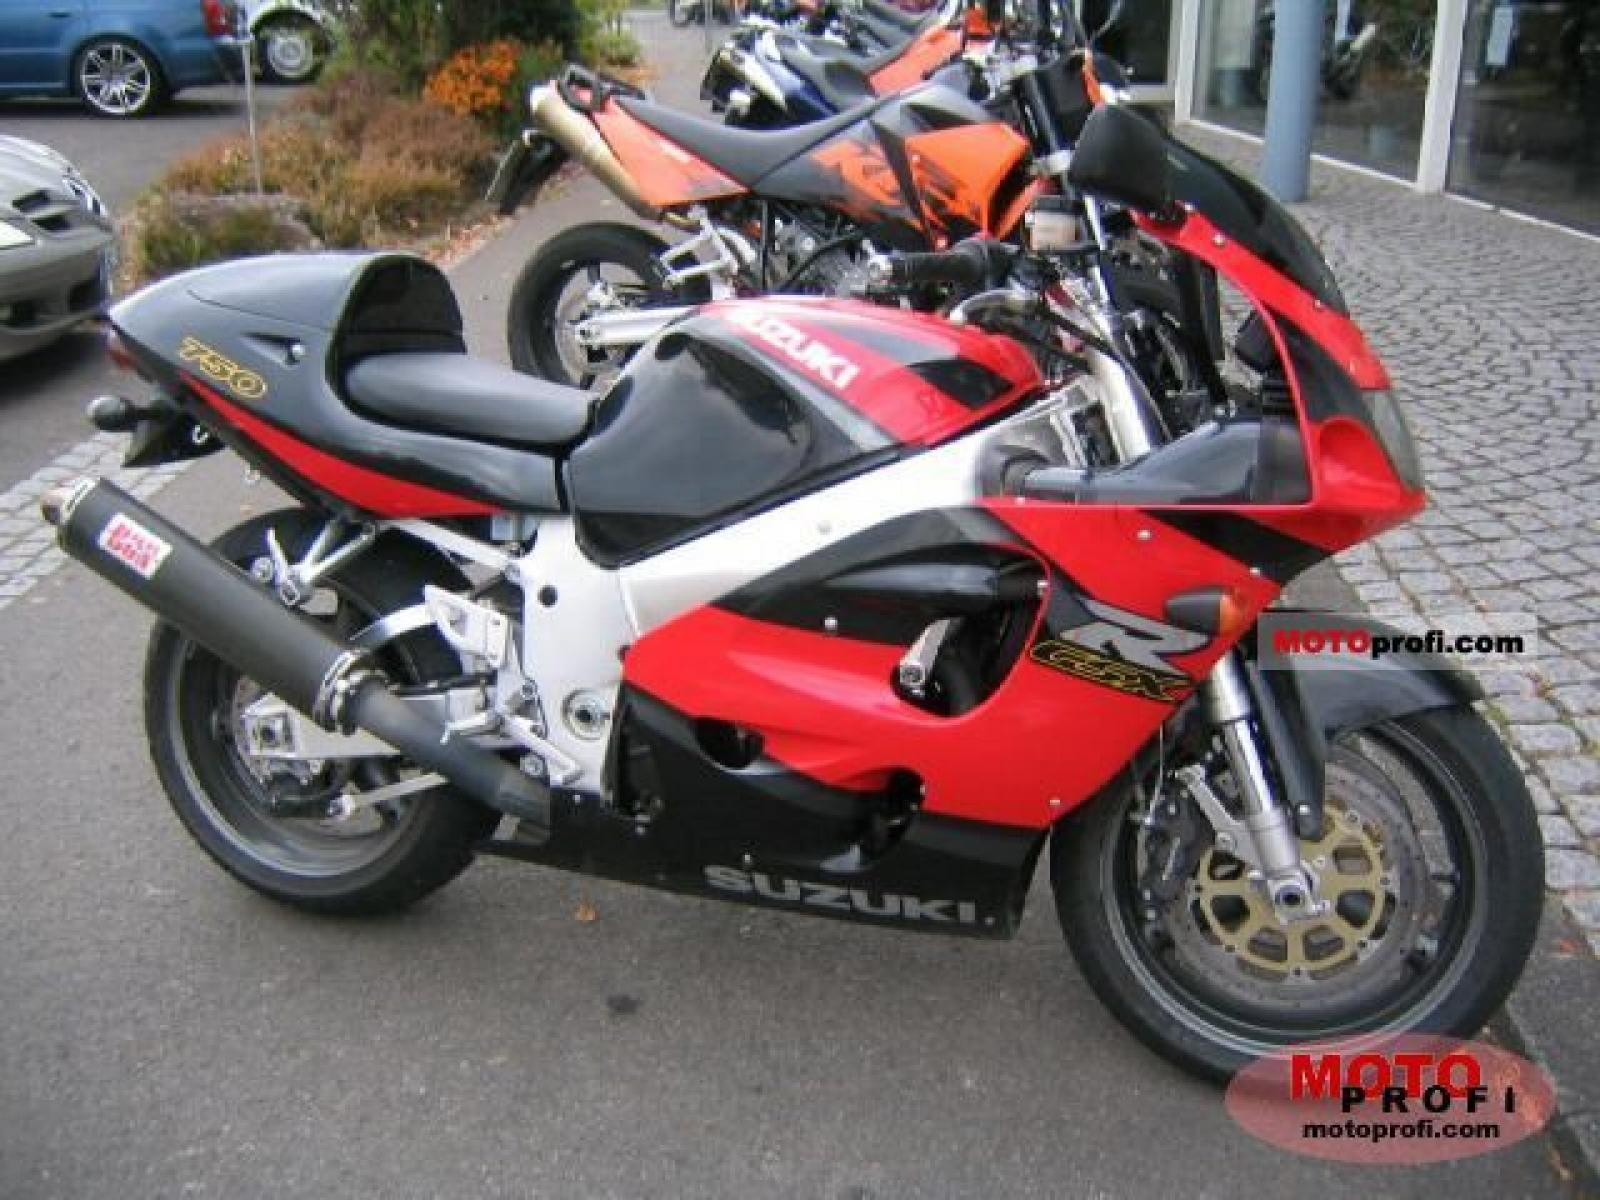 1992 Suzuki GSX-R 750 W (reduced effect) #2